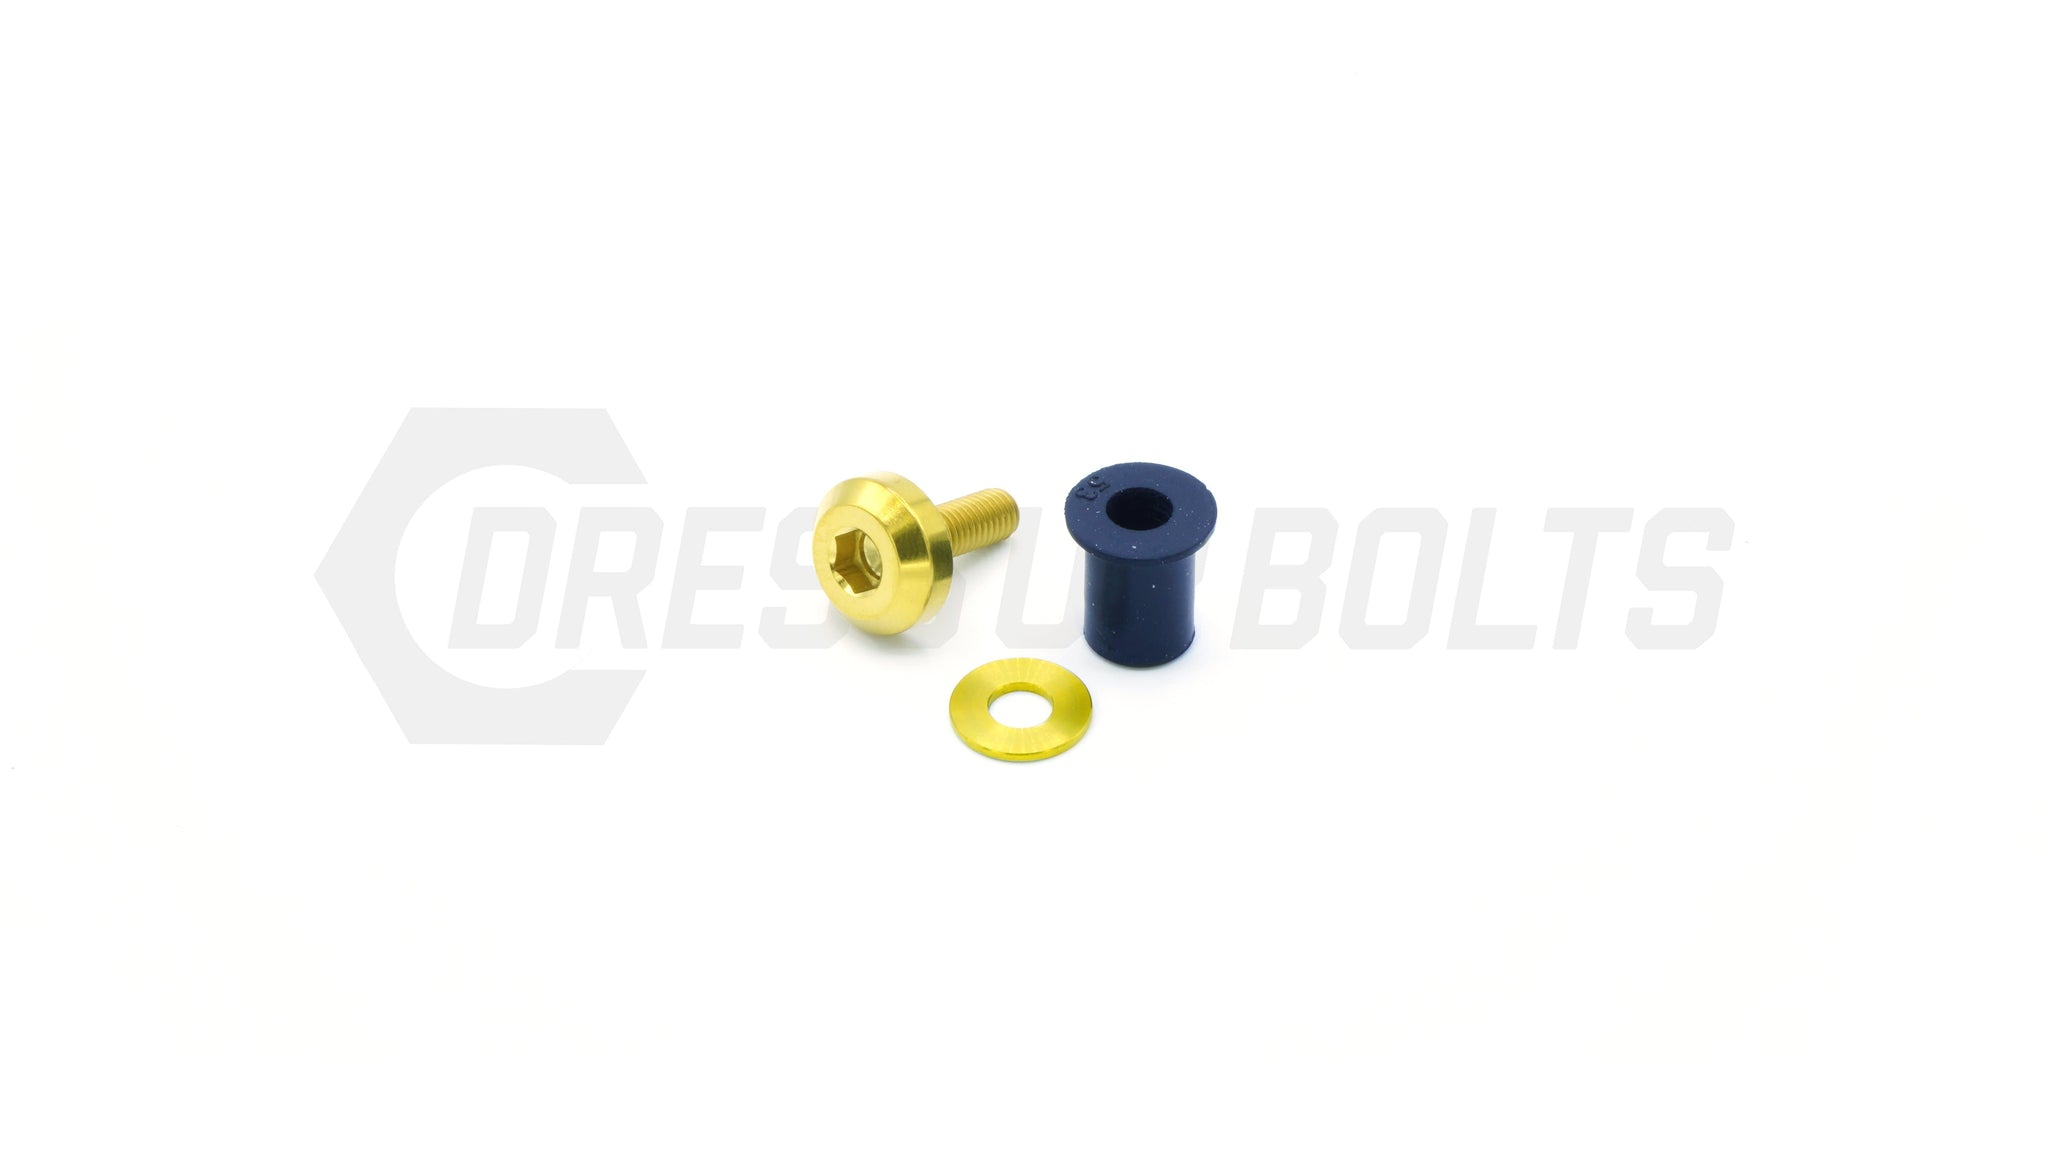 Dress Up Bolts Titanium Widebody Hardware - Combo 6 - DressUpBolts.com